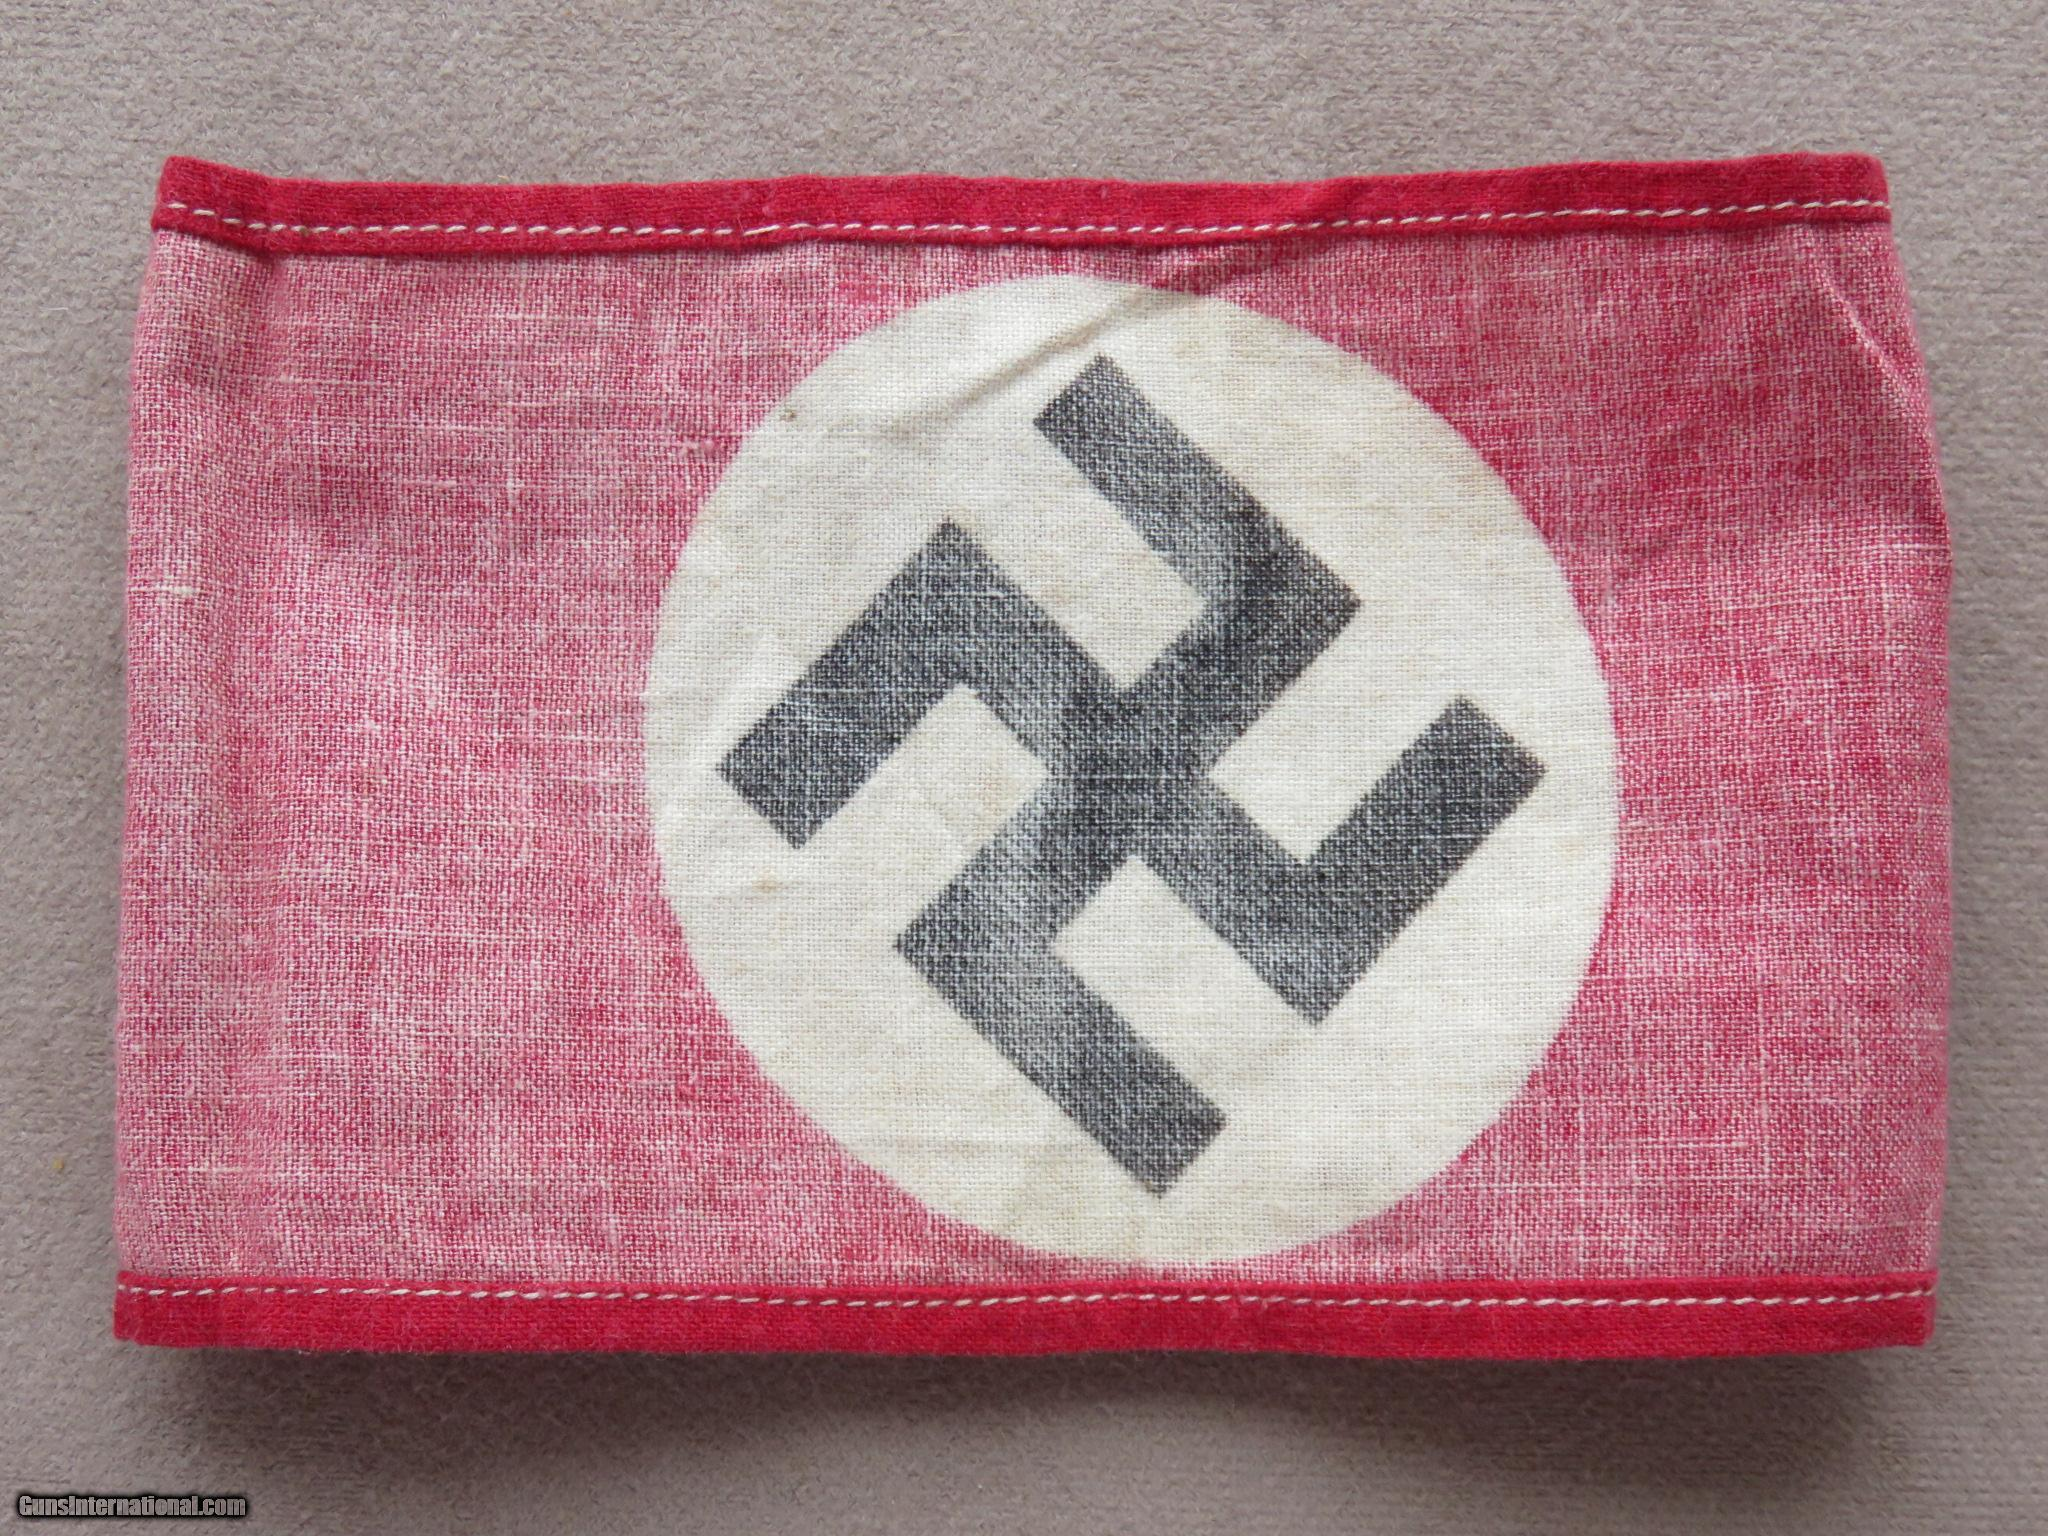 Nazi party armband german wwii nazi party armband german wwii 7 of 8 biocorpaavc Image collections